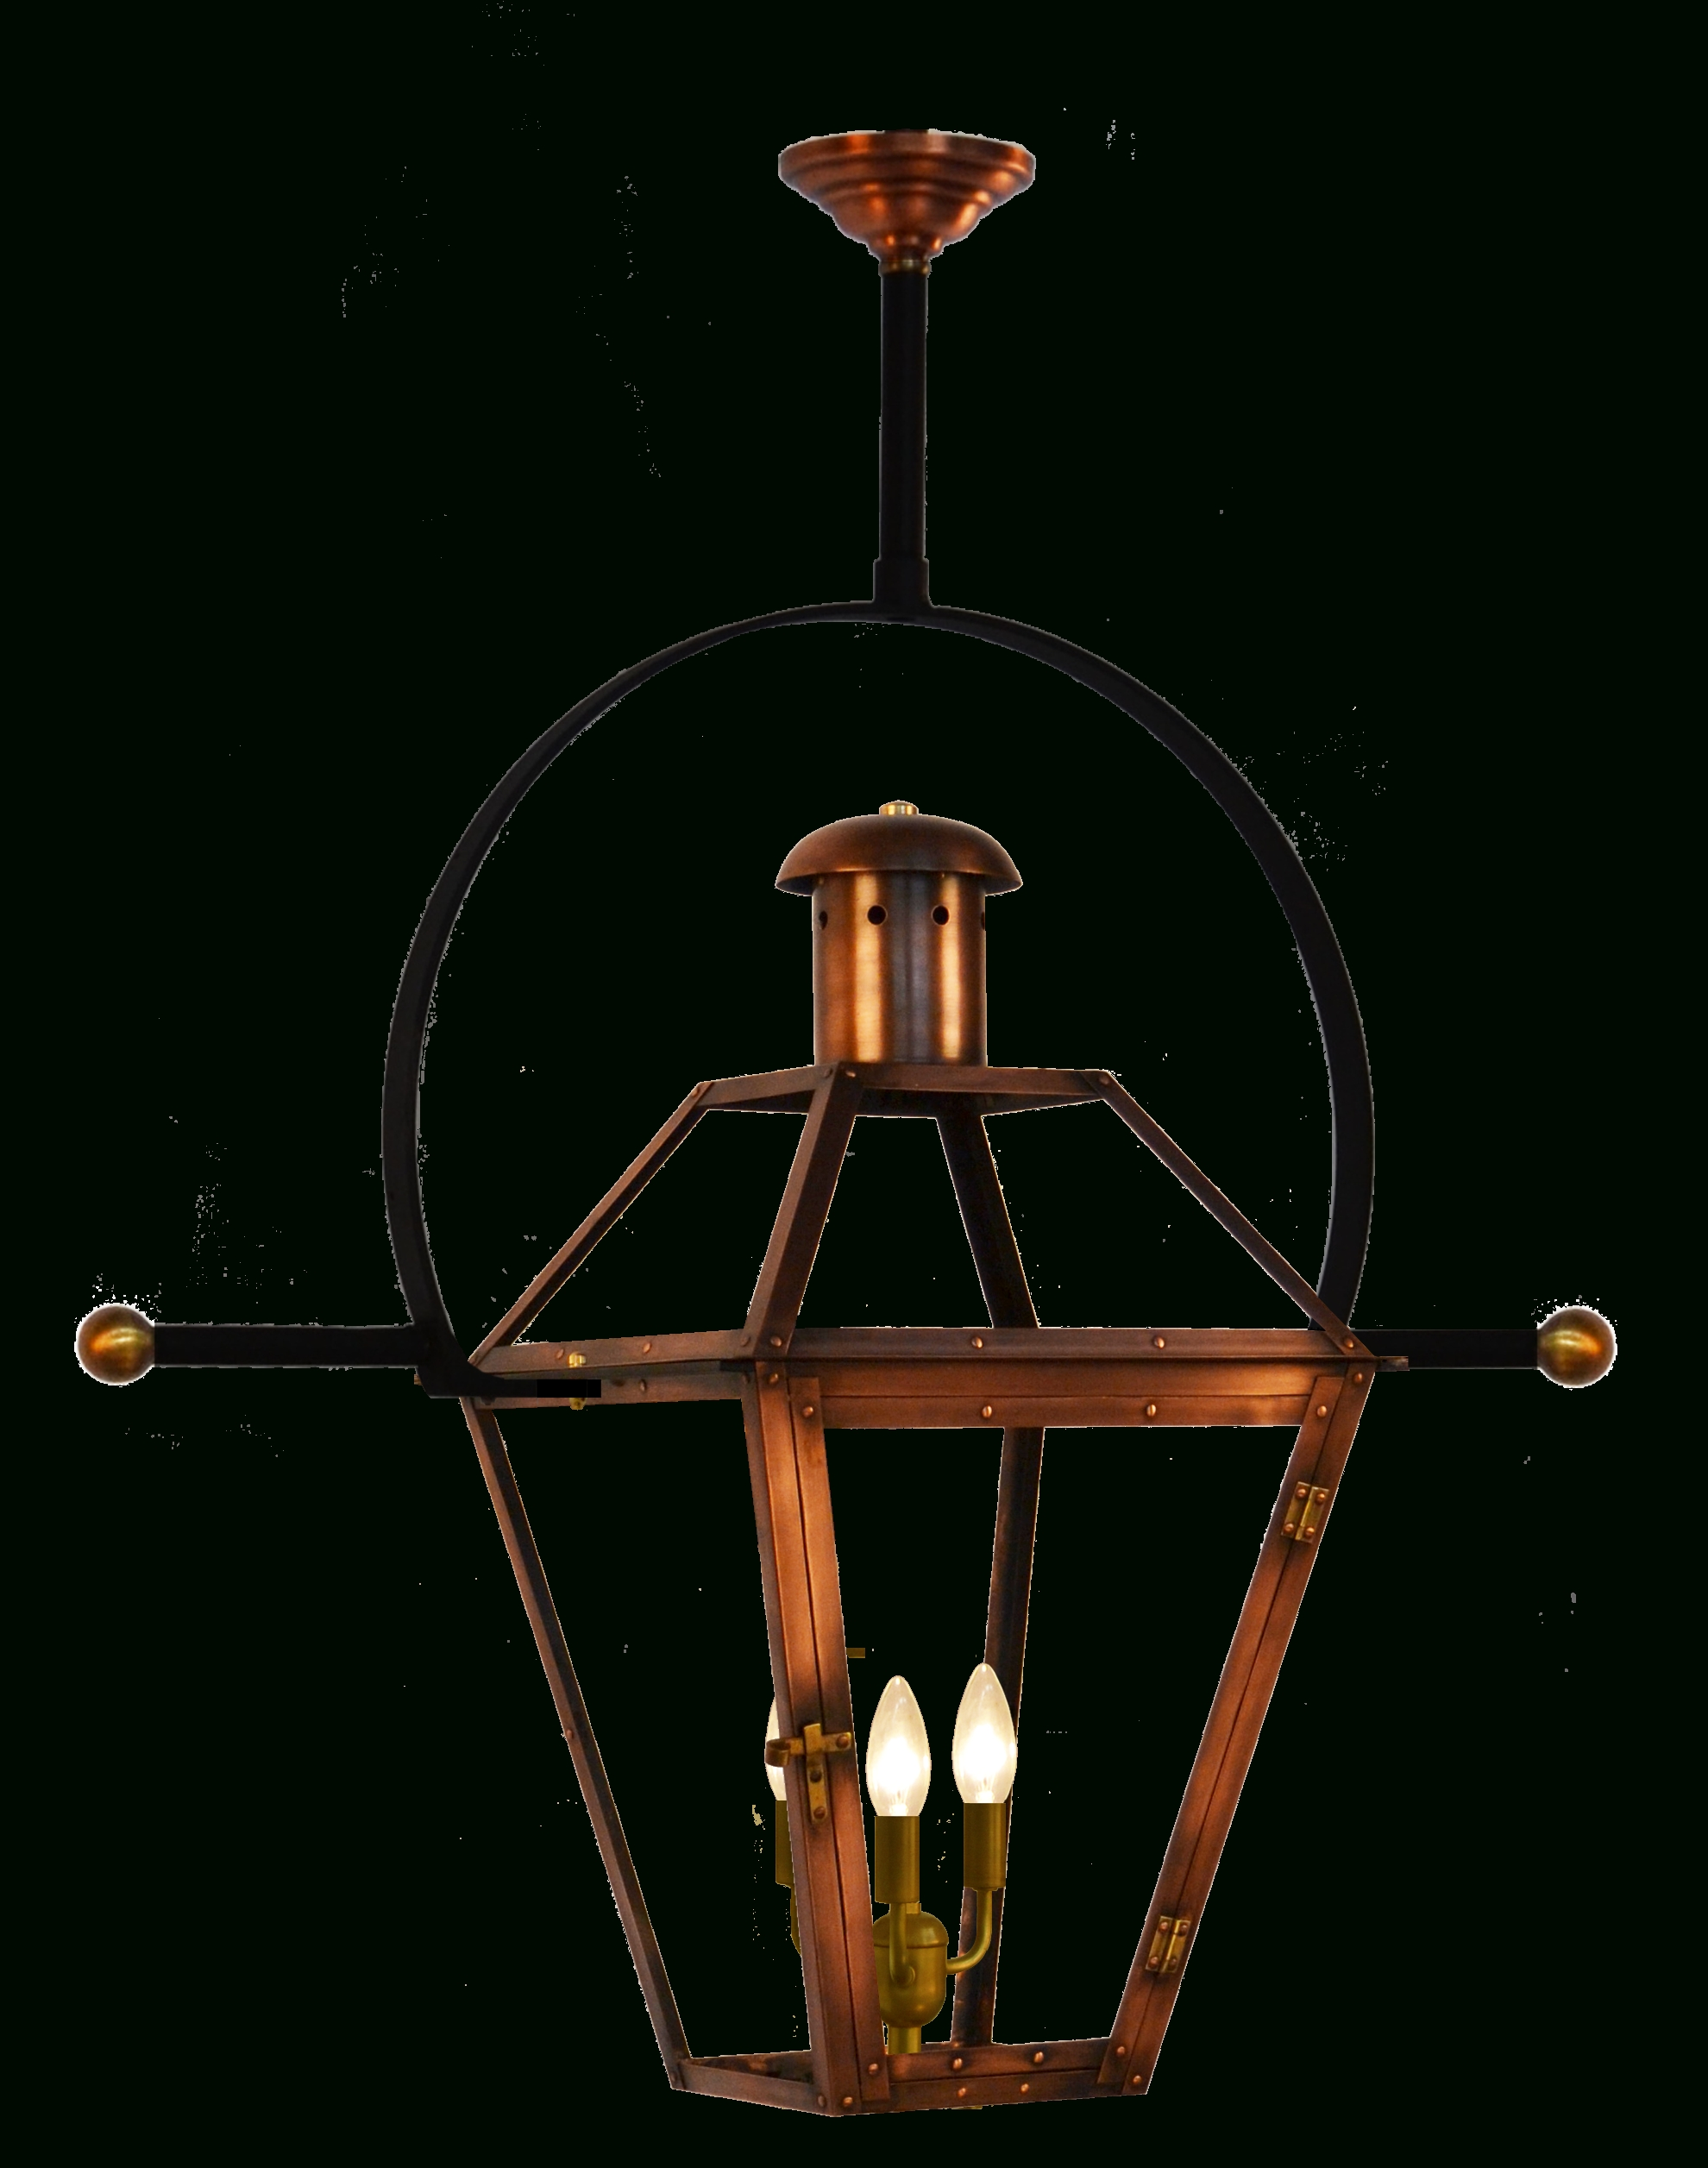 Copper Outdoor Electric Lanterns Intended For Most Current Georgetown Gas Or Electric Copper Lantern – French Market Lanterns (View 9 of 20)